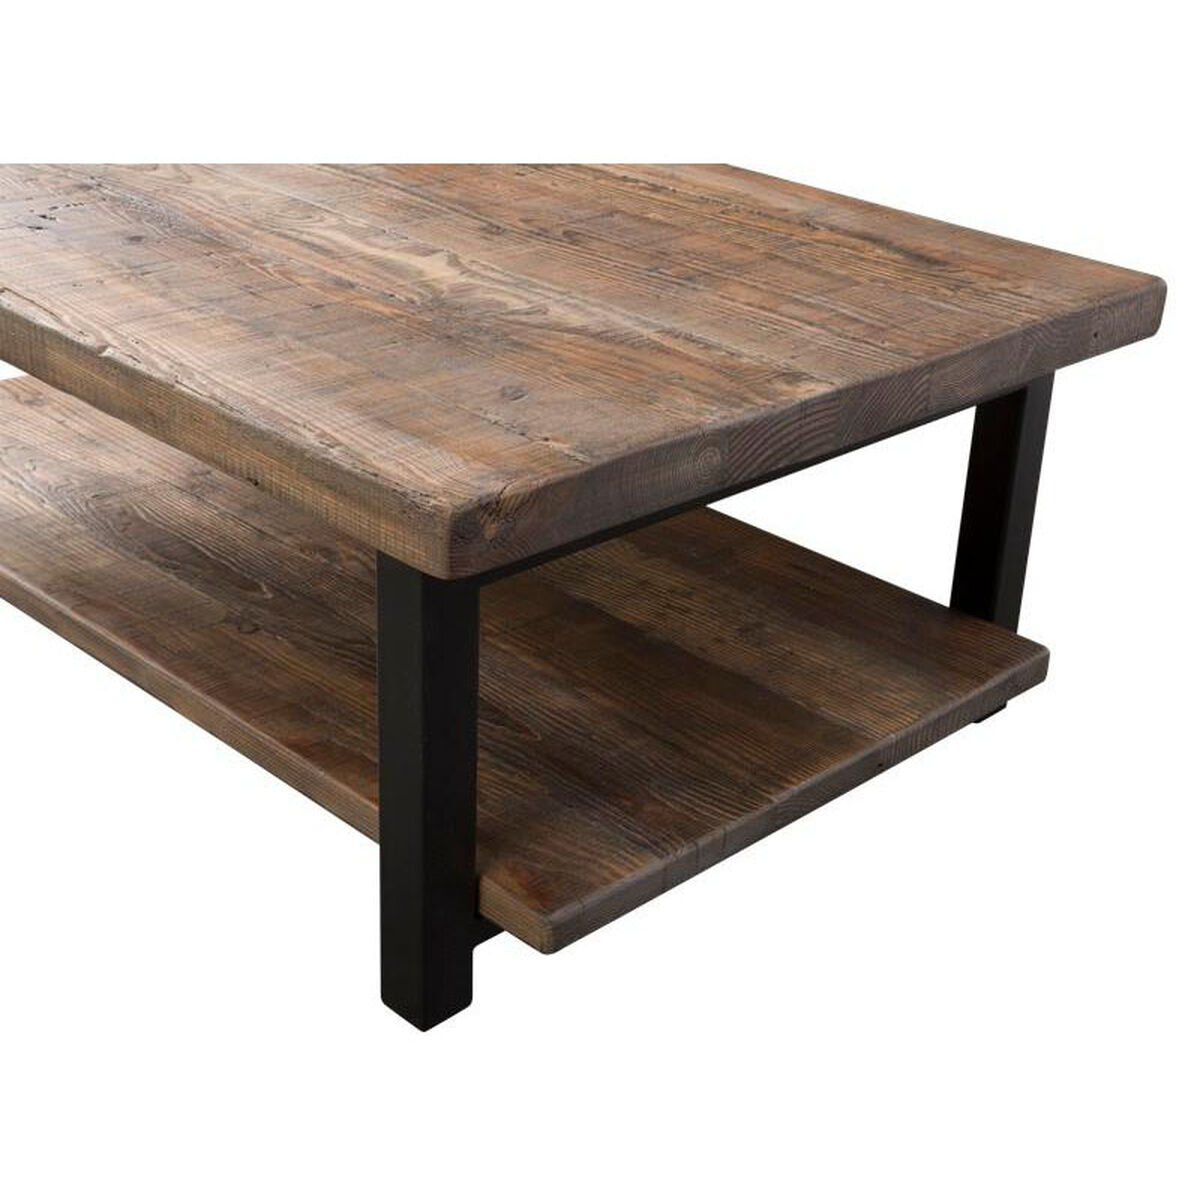 Rustic Wood And Metal Coffee Tables: Pomona Rustic Wood And Metal 48''W X 18''H Large Coffee